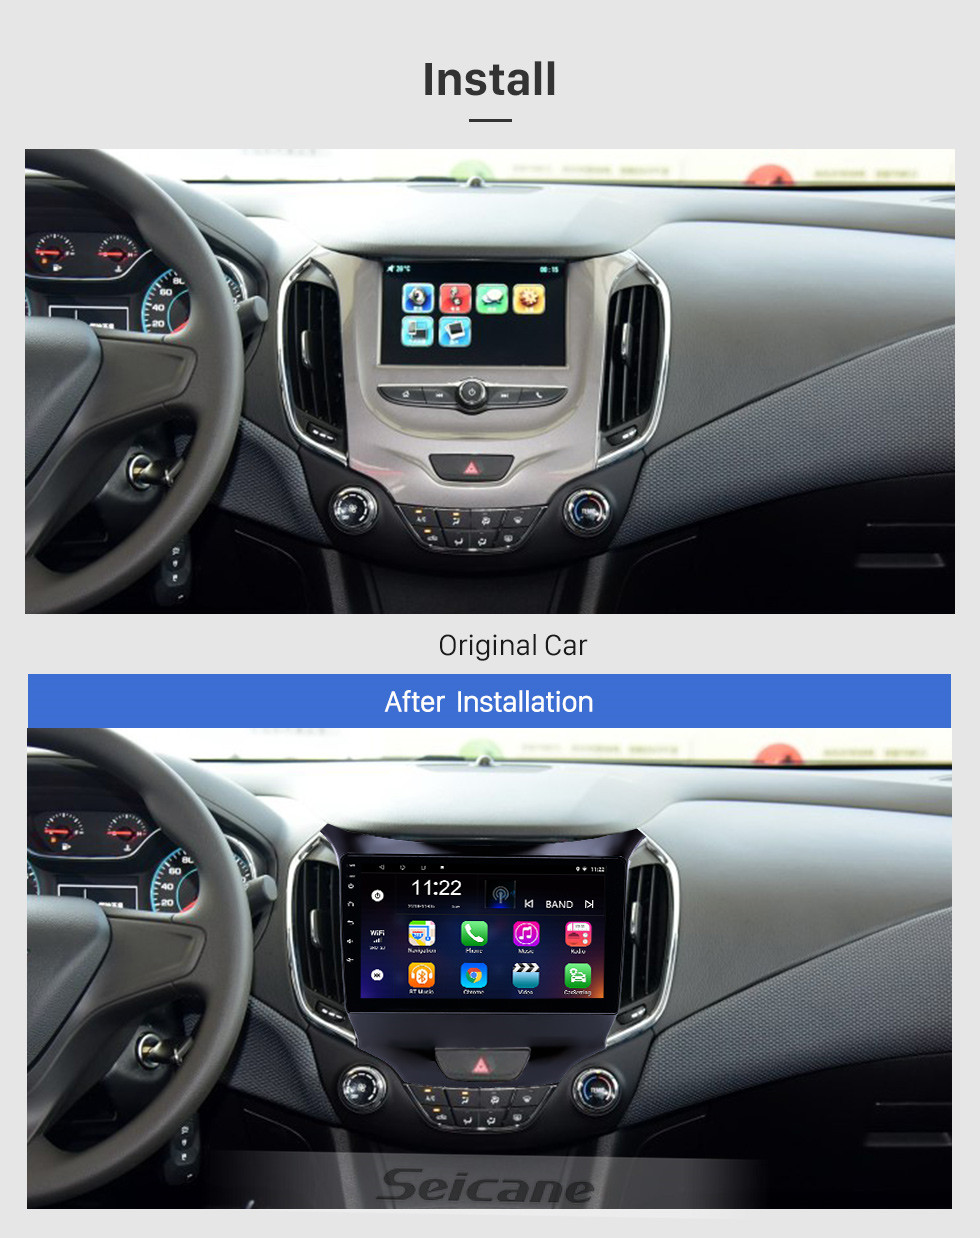 Seicane 2015-2018 chevy Chevrolet Cruze Android 10.0 HD Touchscreen 9 inch Head Unit Bluetooth GPS Navigation Radio with AUX support OBD2 SWC Carplay